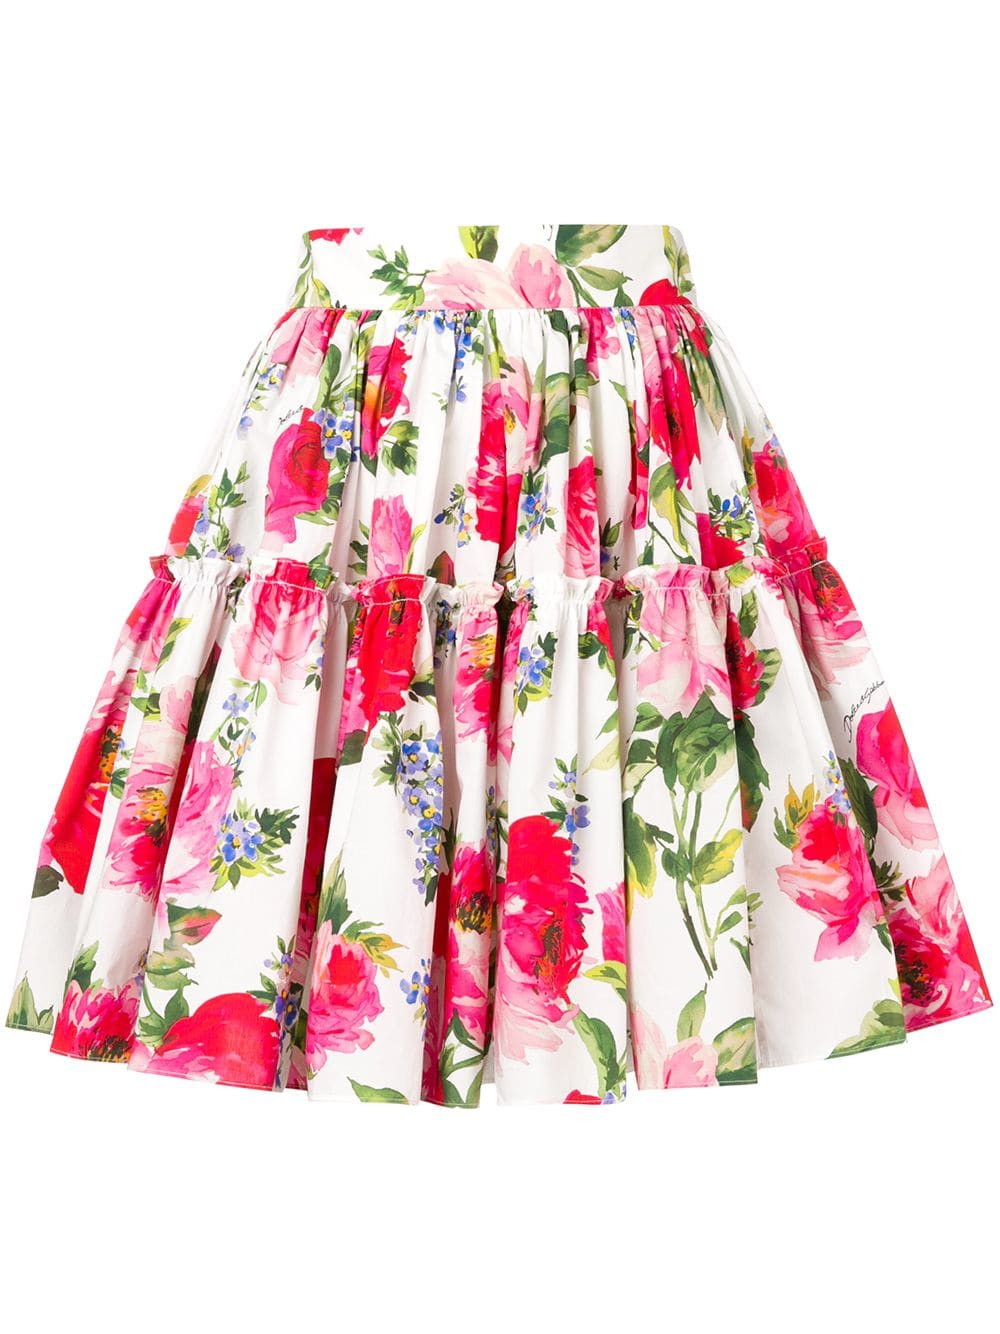 287fcbc13bae56 Dolce & Gabbana floral-print skirt - White in 2019 | Products ...